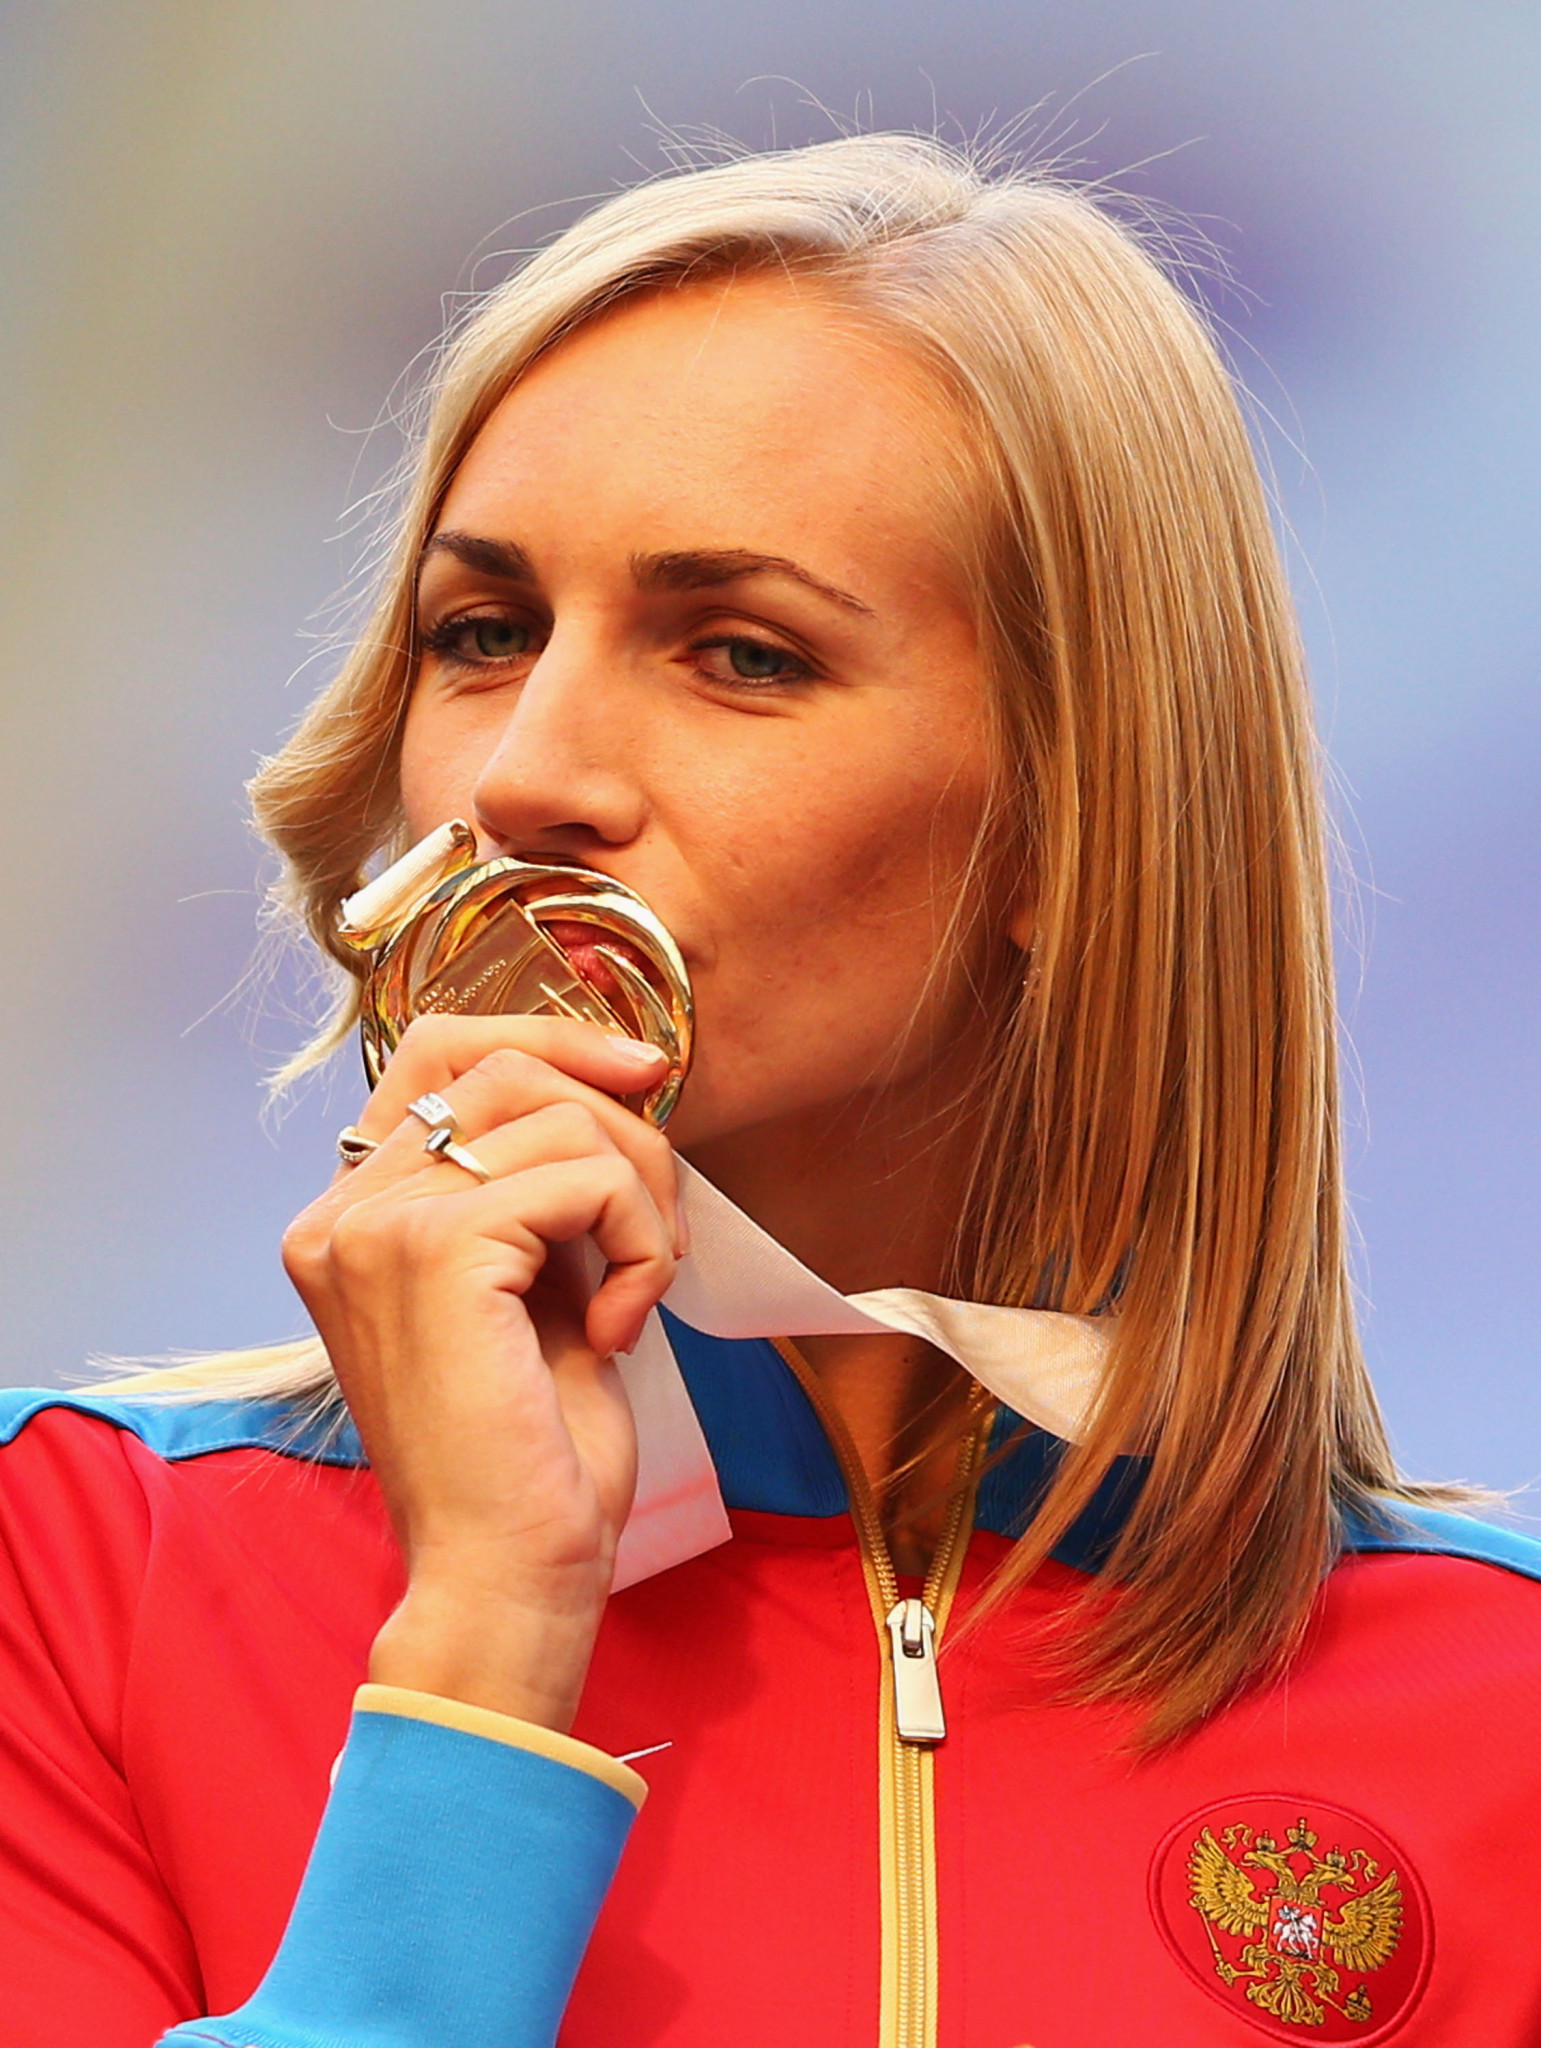 Russian high jumper Svetlana Shkolina will now be stripped of the gold medal she won at the 2013 IAAF World Championships in Moscow after she was banned for four years by the Court of Arbitration for Sport ©Getty Images